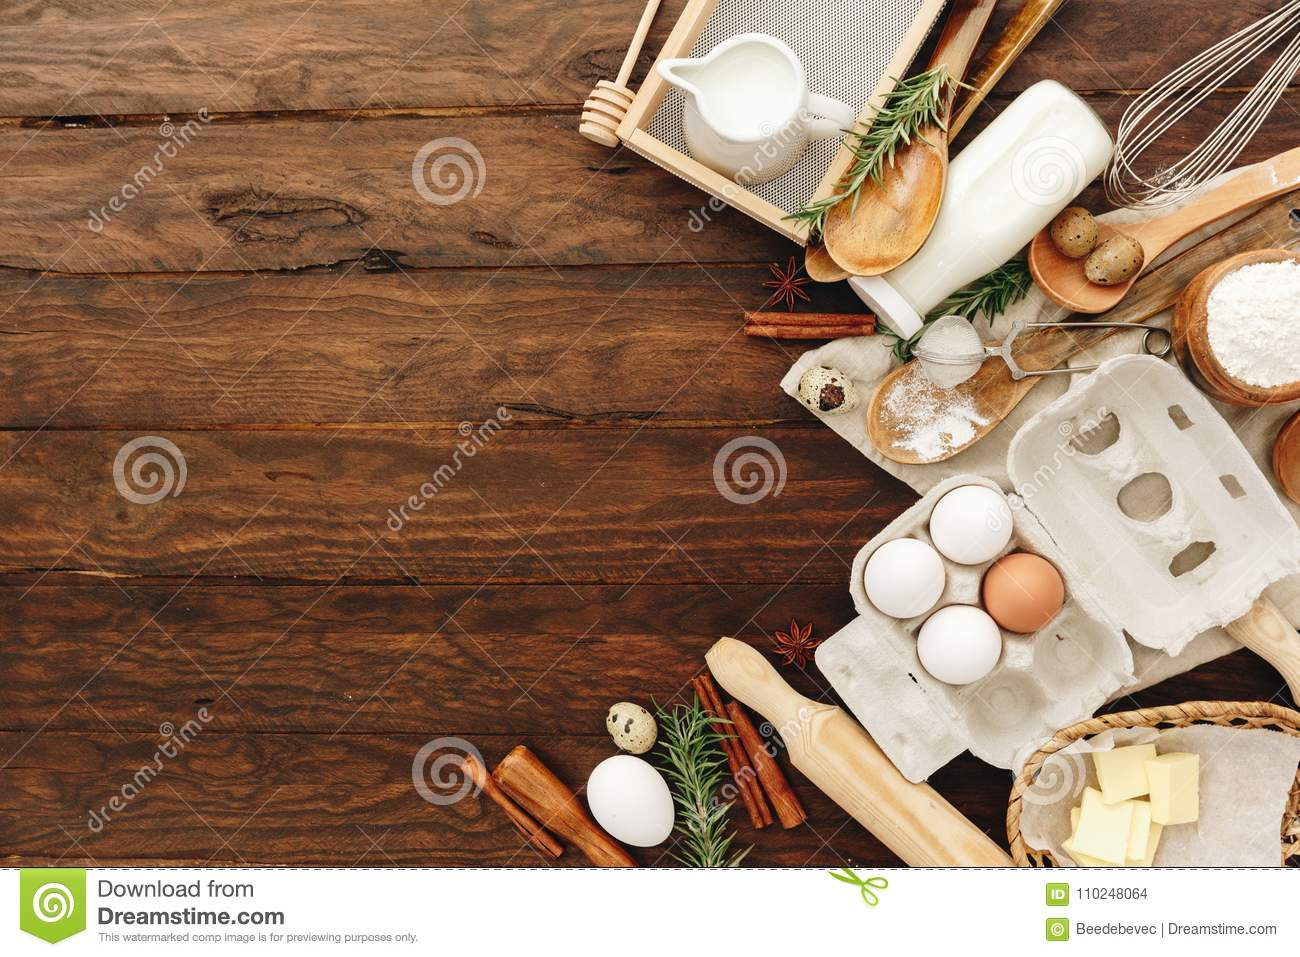 Baking or cooking background. Ingredients, kitchen items for baking cakes.